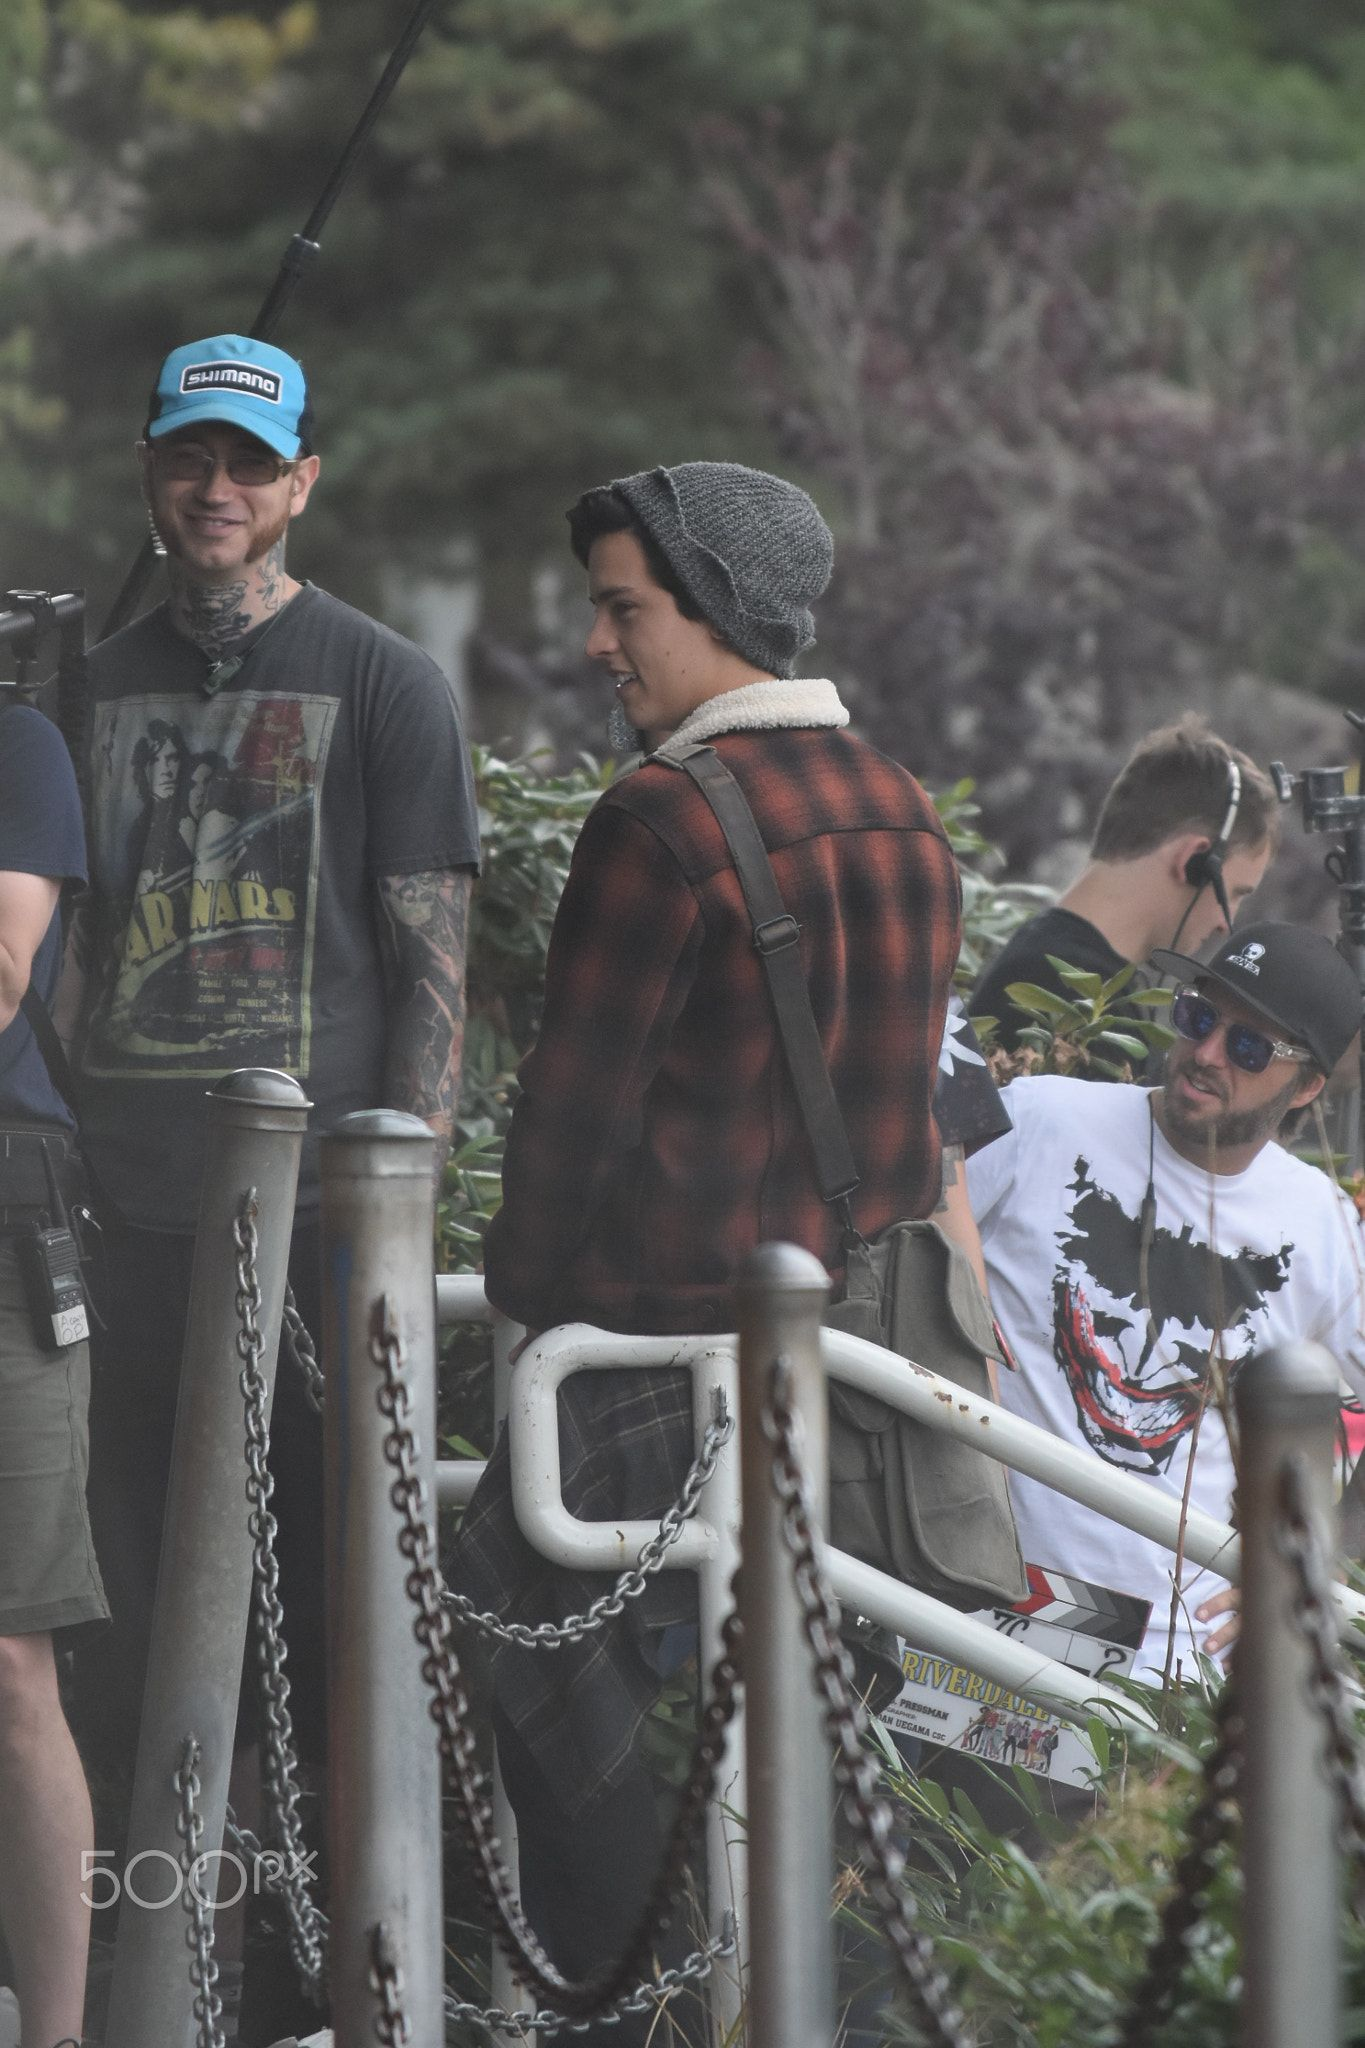 7ed35486 Cole Sprouse on set – LANGLEY, BC, CANADA. AUGUST 8, 2017 Cole Sprose who  plays Jughead on the television show Riverdale films a scene at James  Kennedy ...